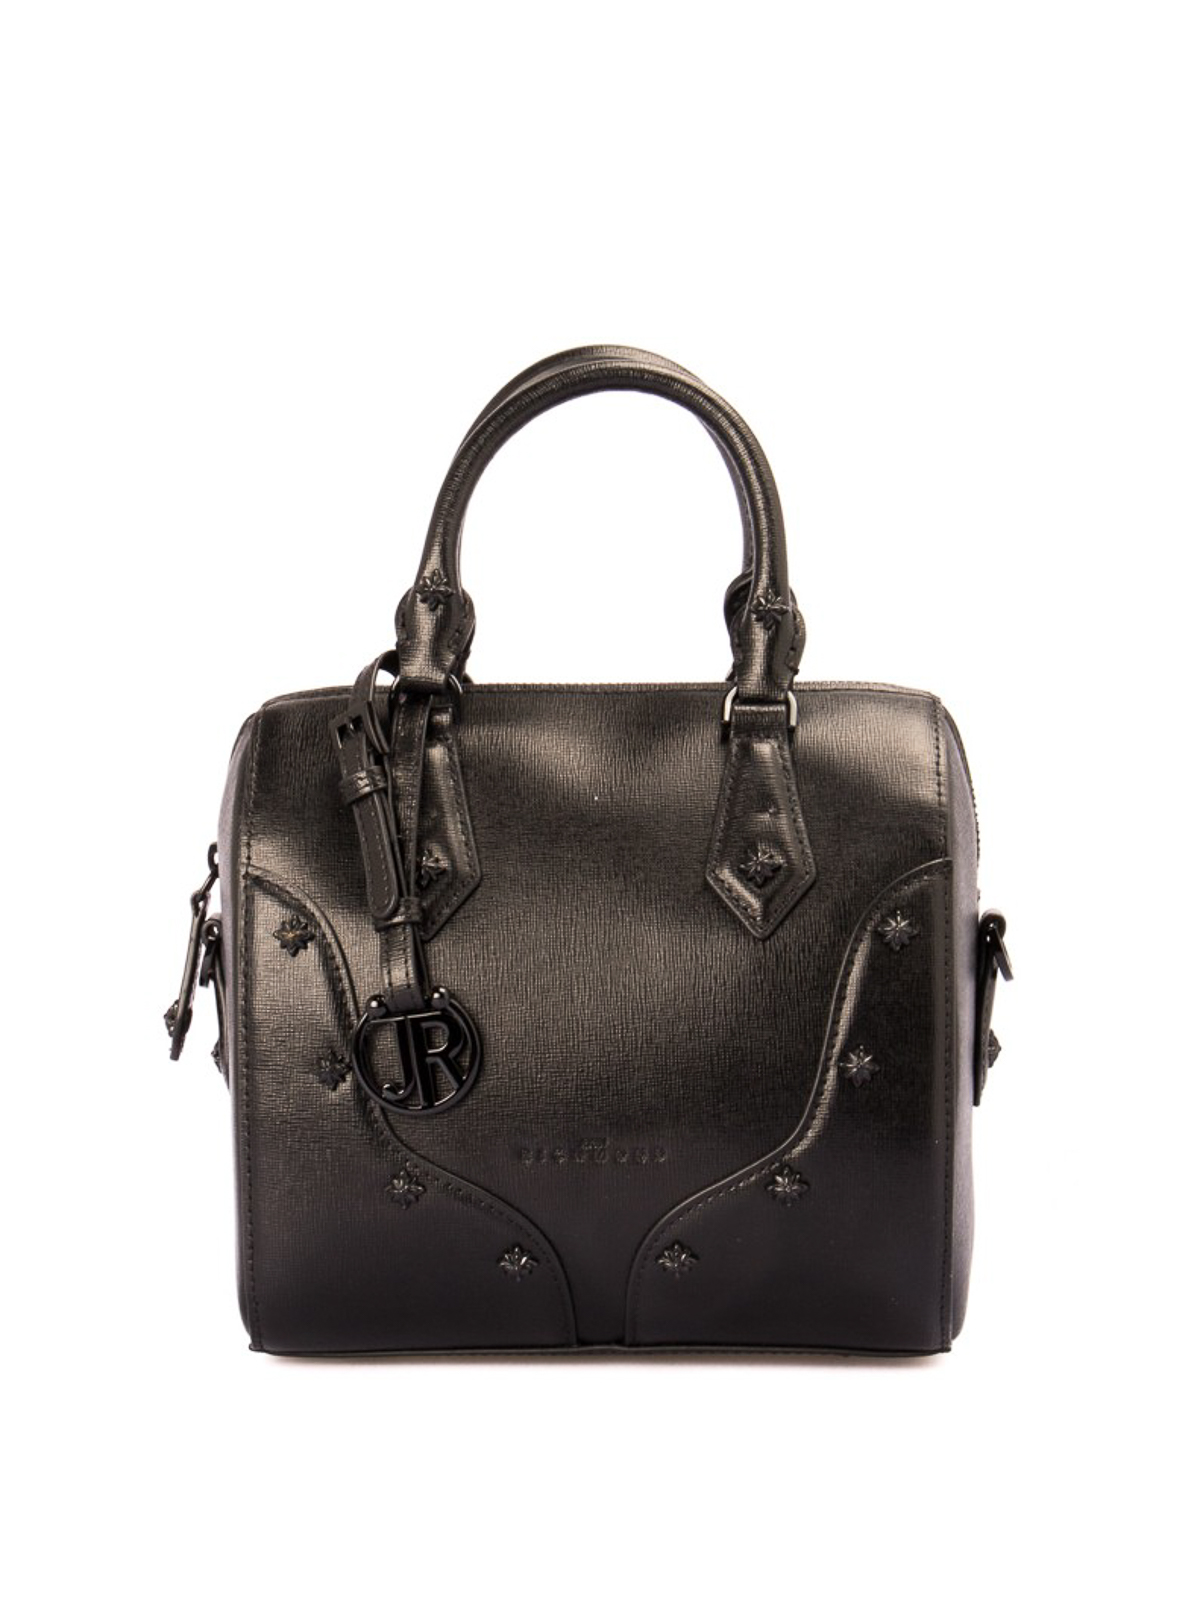 John Richmond THE WHO LEATHER BAG